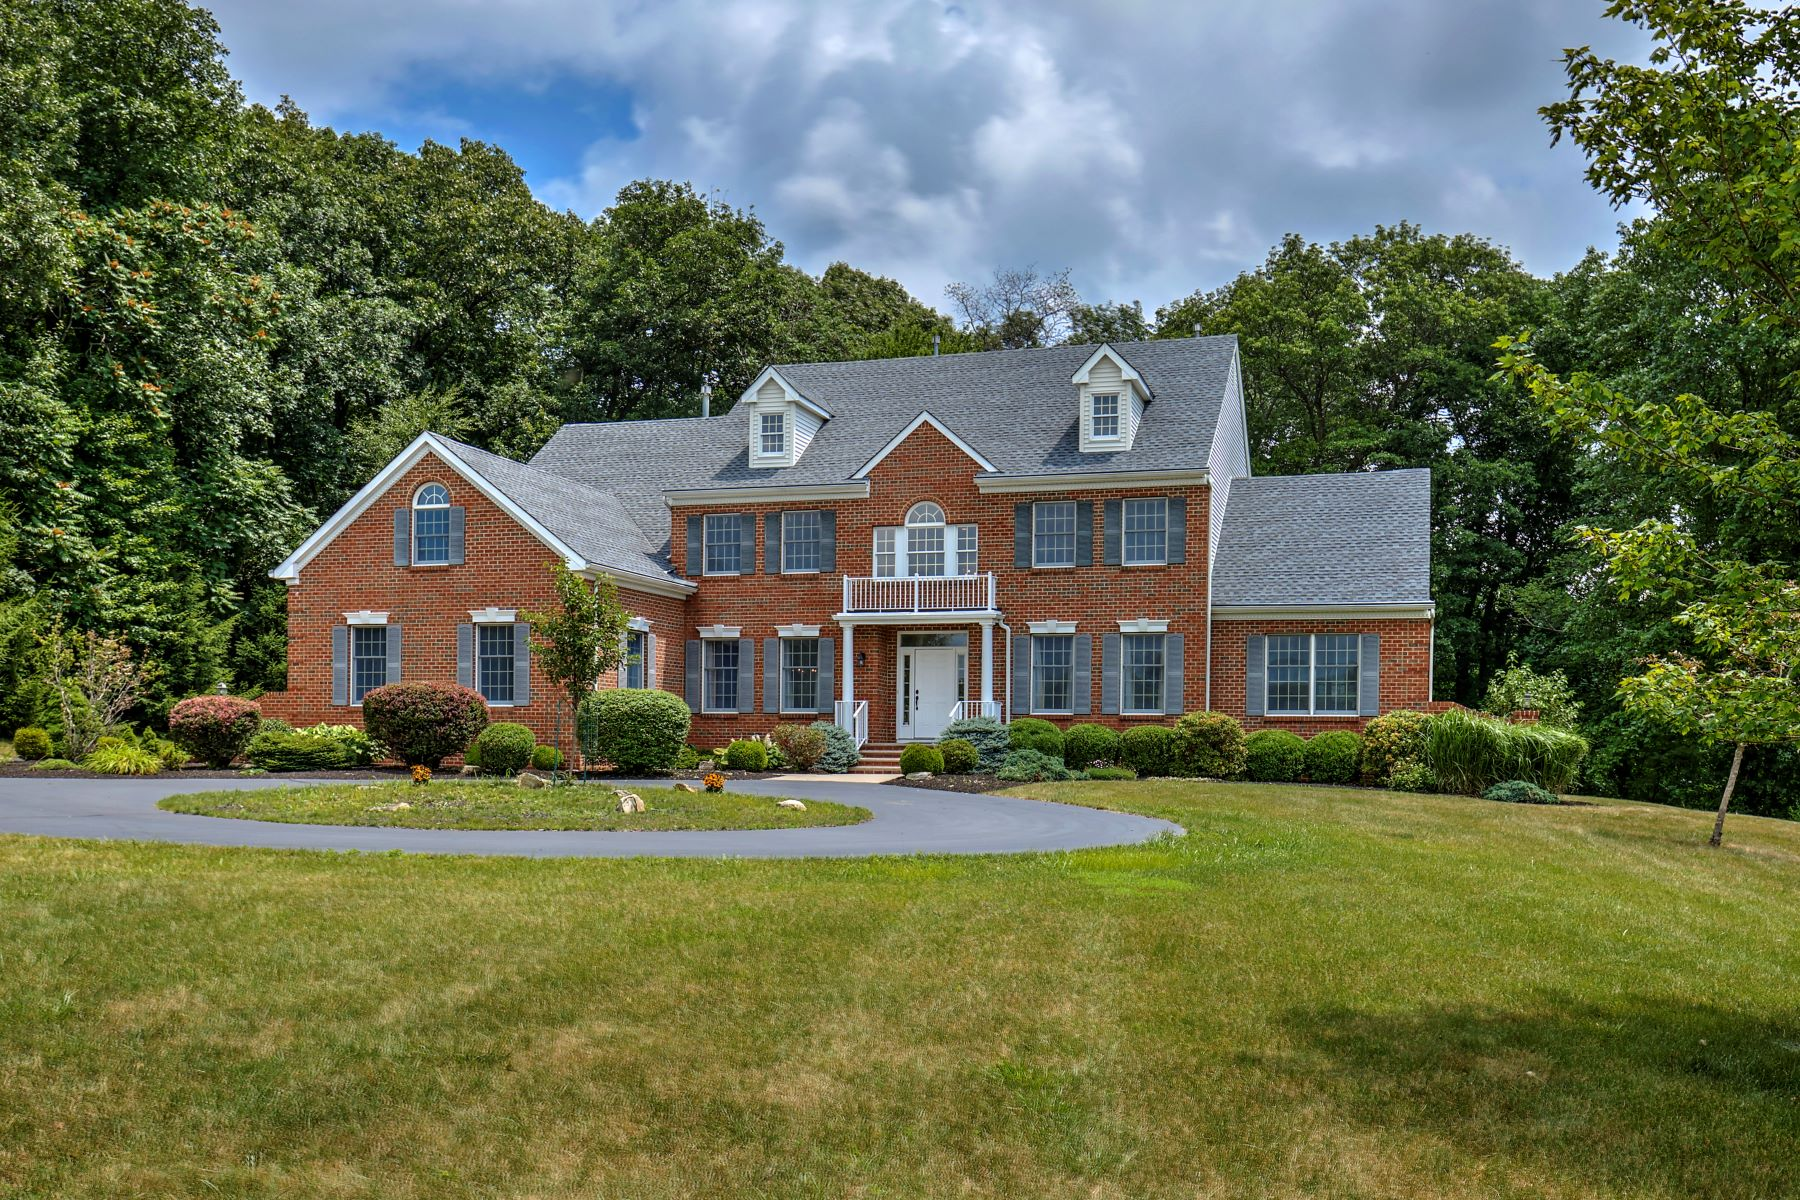 Single Family Homes for Active at Inviting Colonial 238-A Old Turnpike Road Tewksbury Township, New Jersey 07830 United States